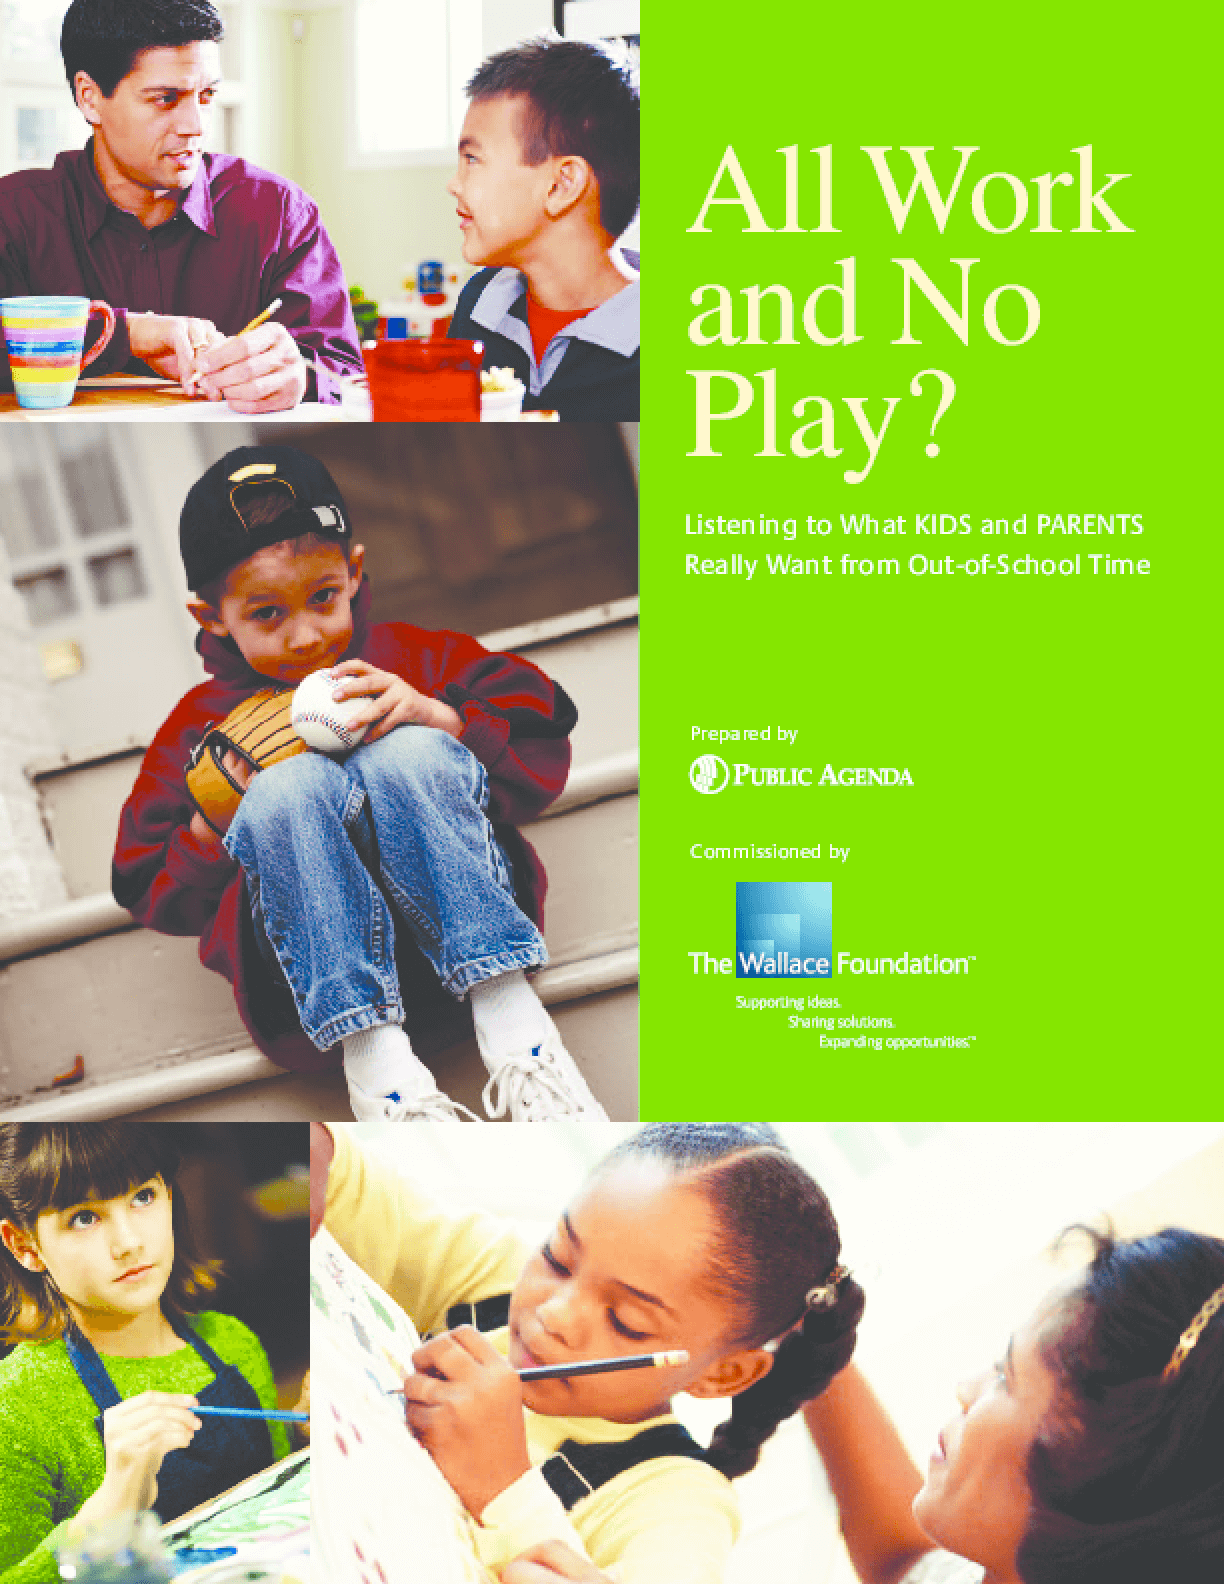 All Work and No Play? Listening to What Kids and Parents Really Want From Out-of-School Time